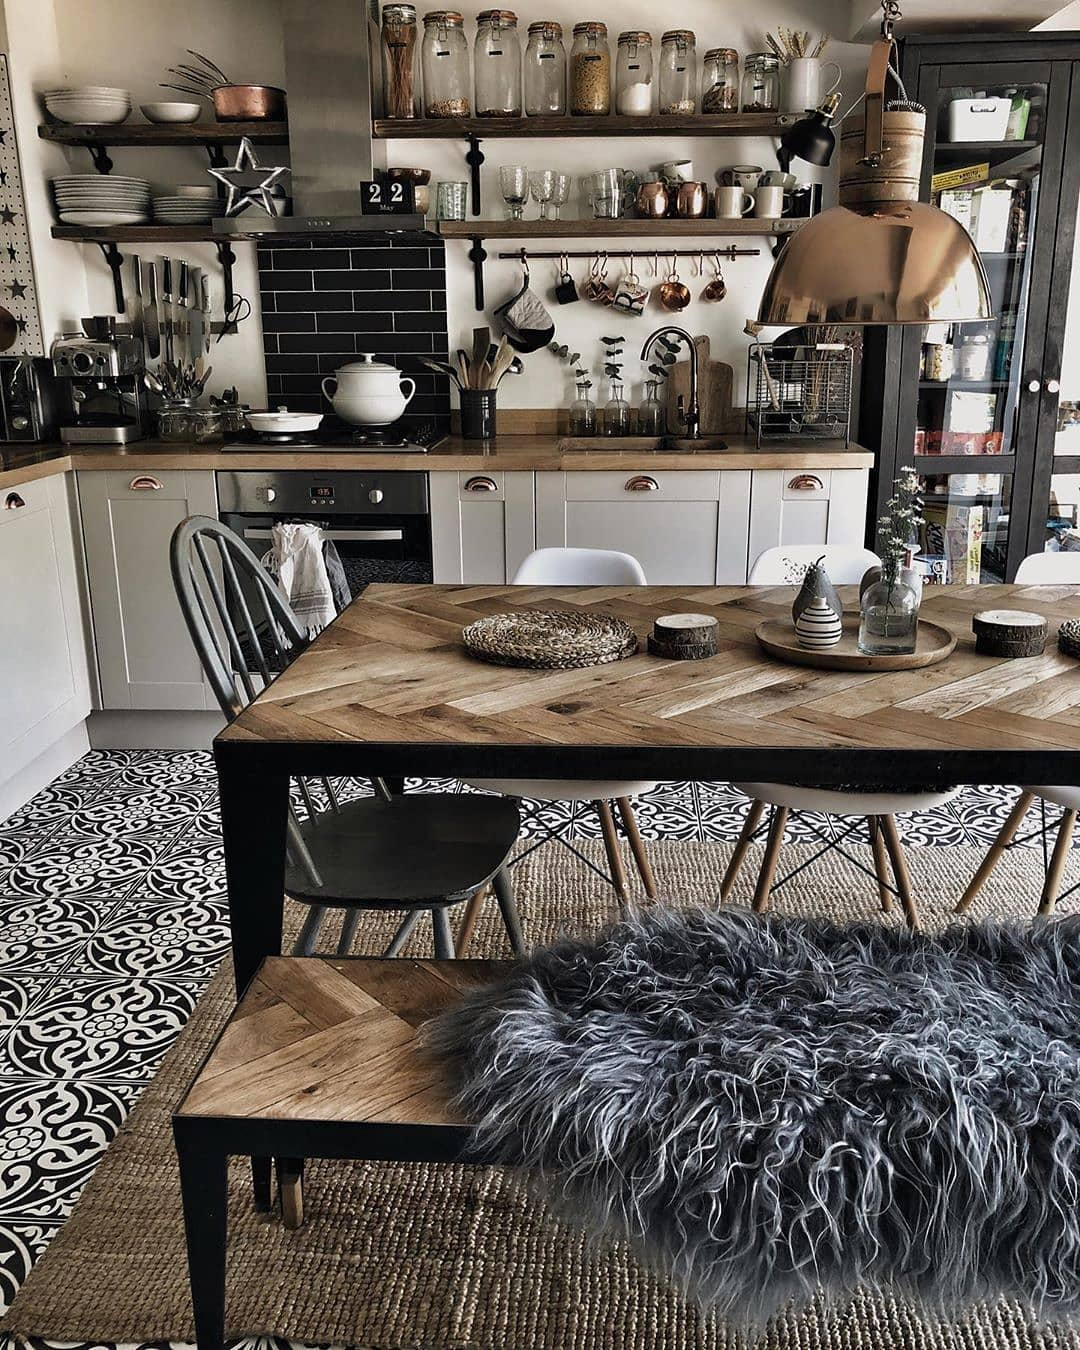 How To Decorate A Kitchen On A Budget Decoholic